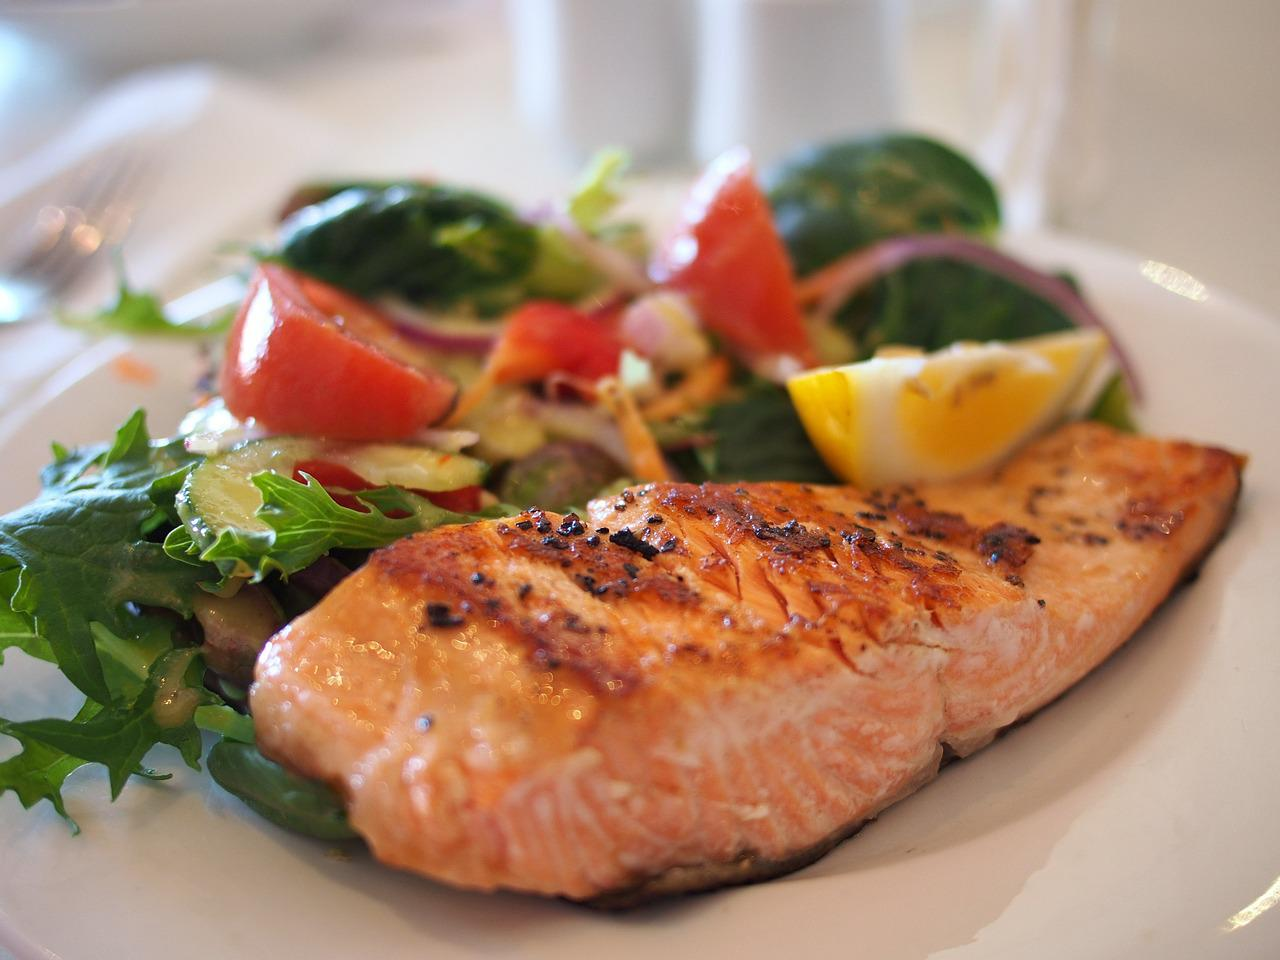 Which fish has the healthiest fats?